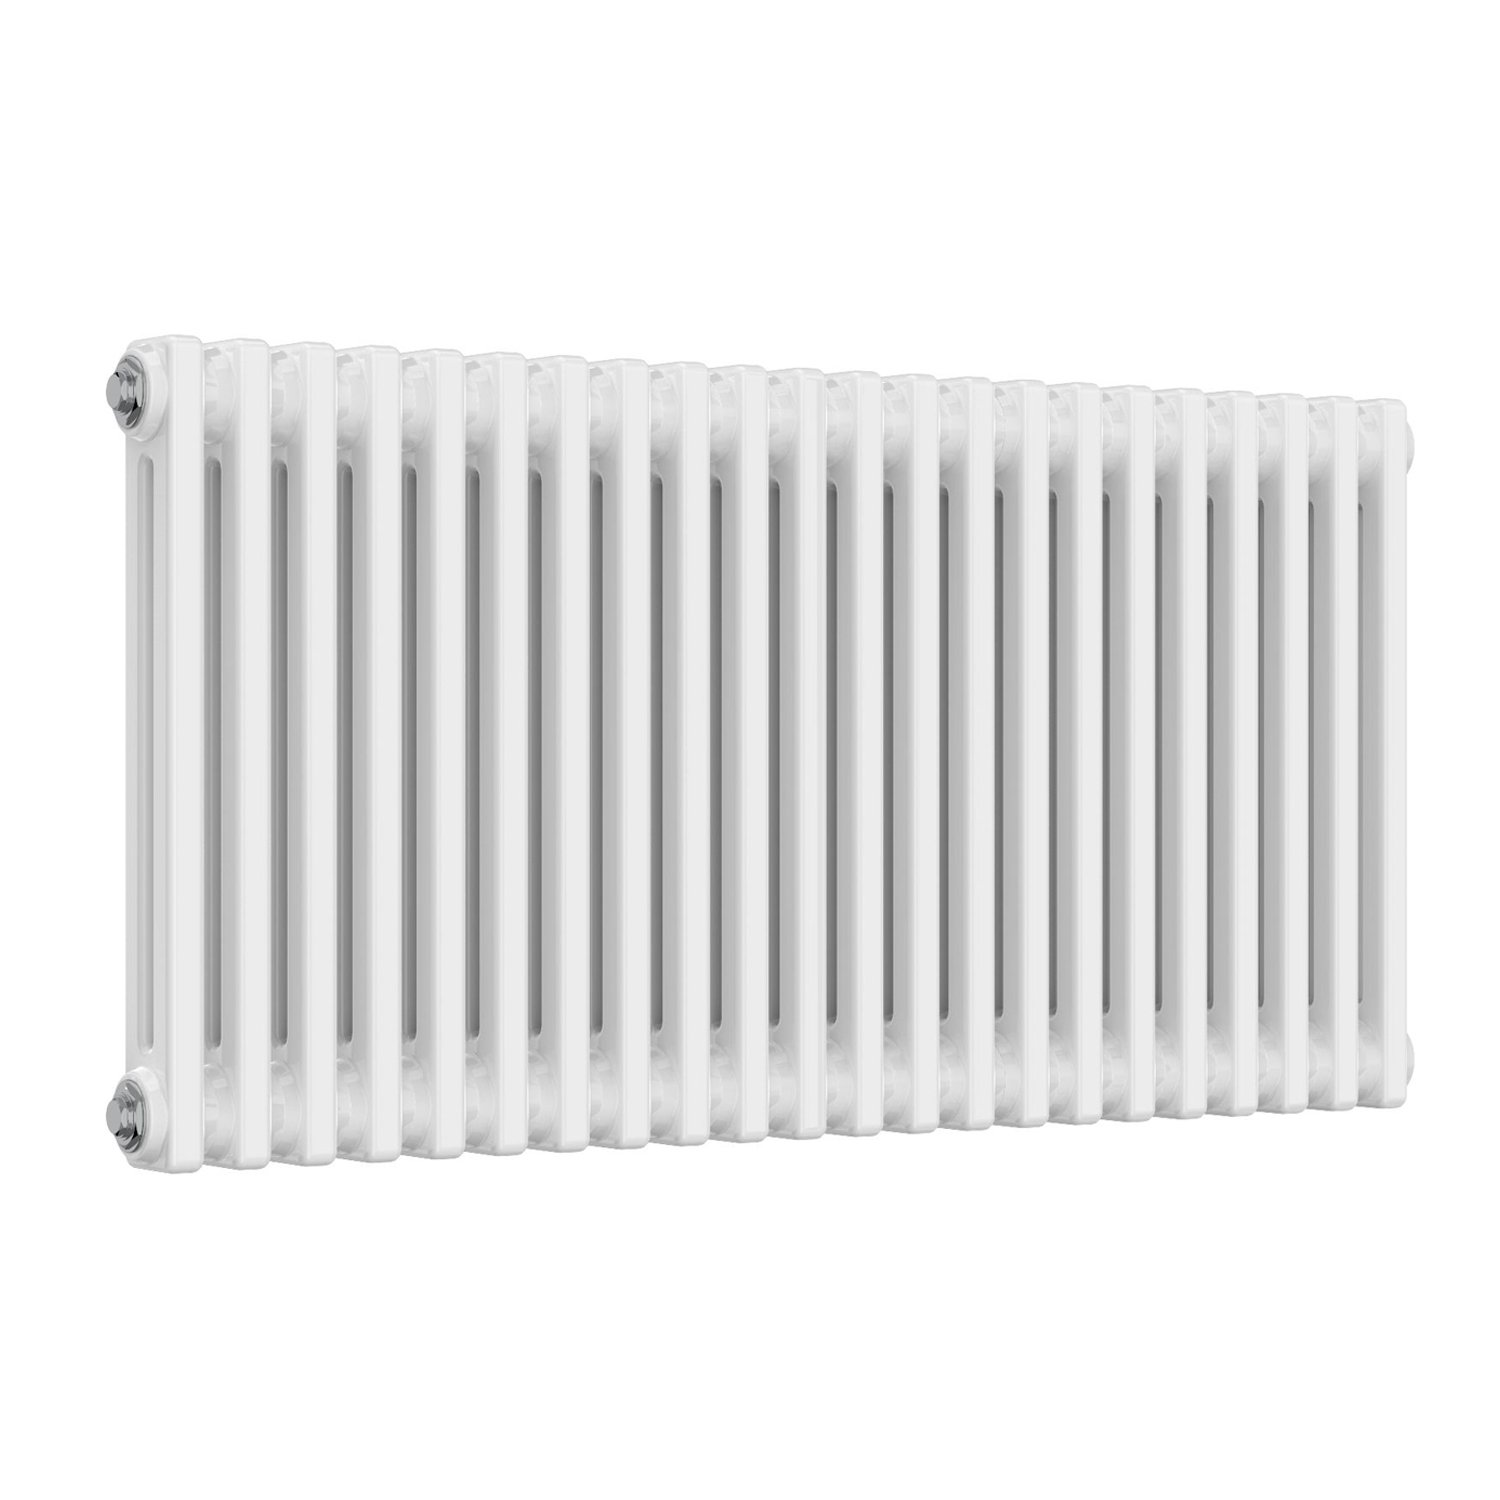 Stelrad Radical Radiator 600mm H x 400mm W Single Convector 15mm Angled TRV